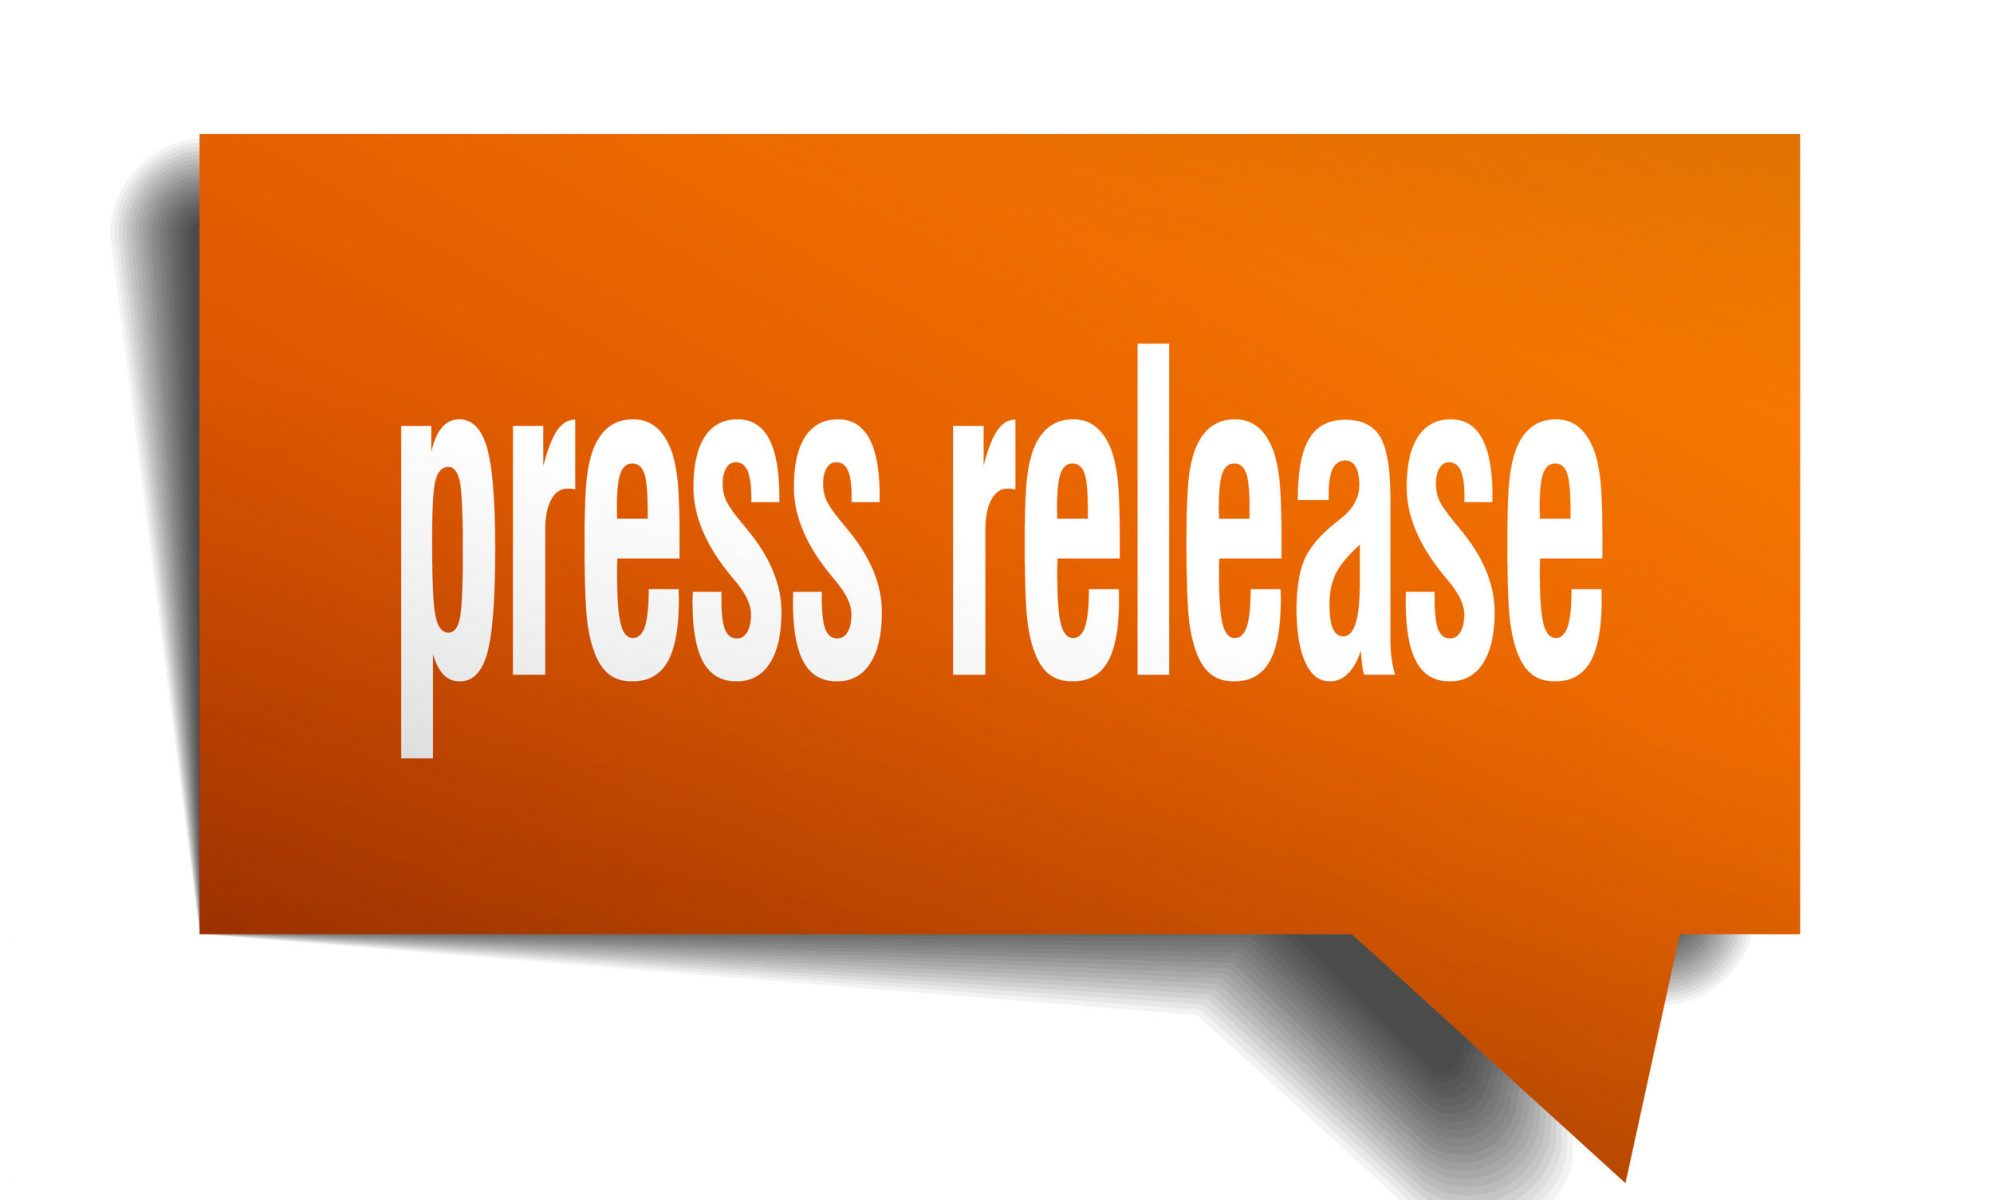 good press release writing and distribution service